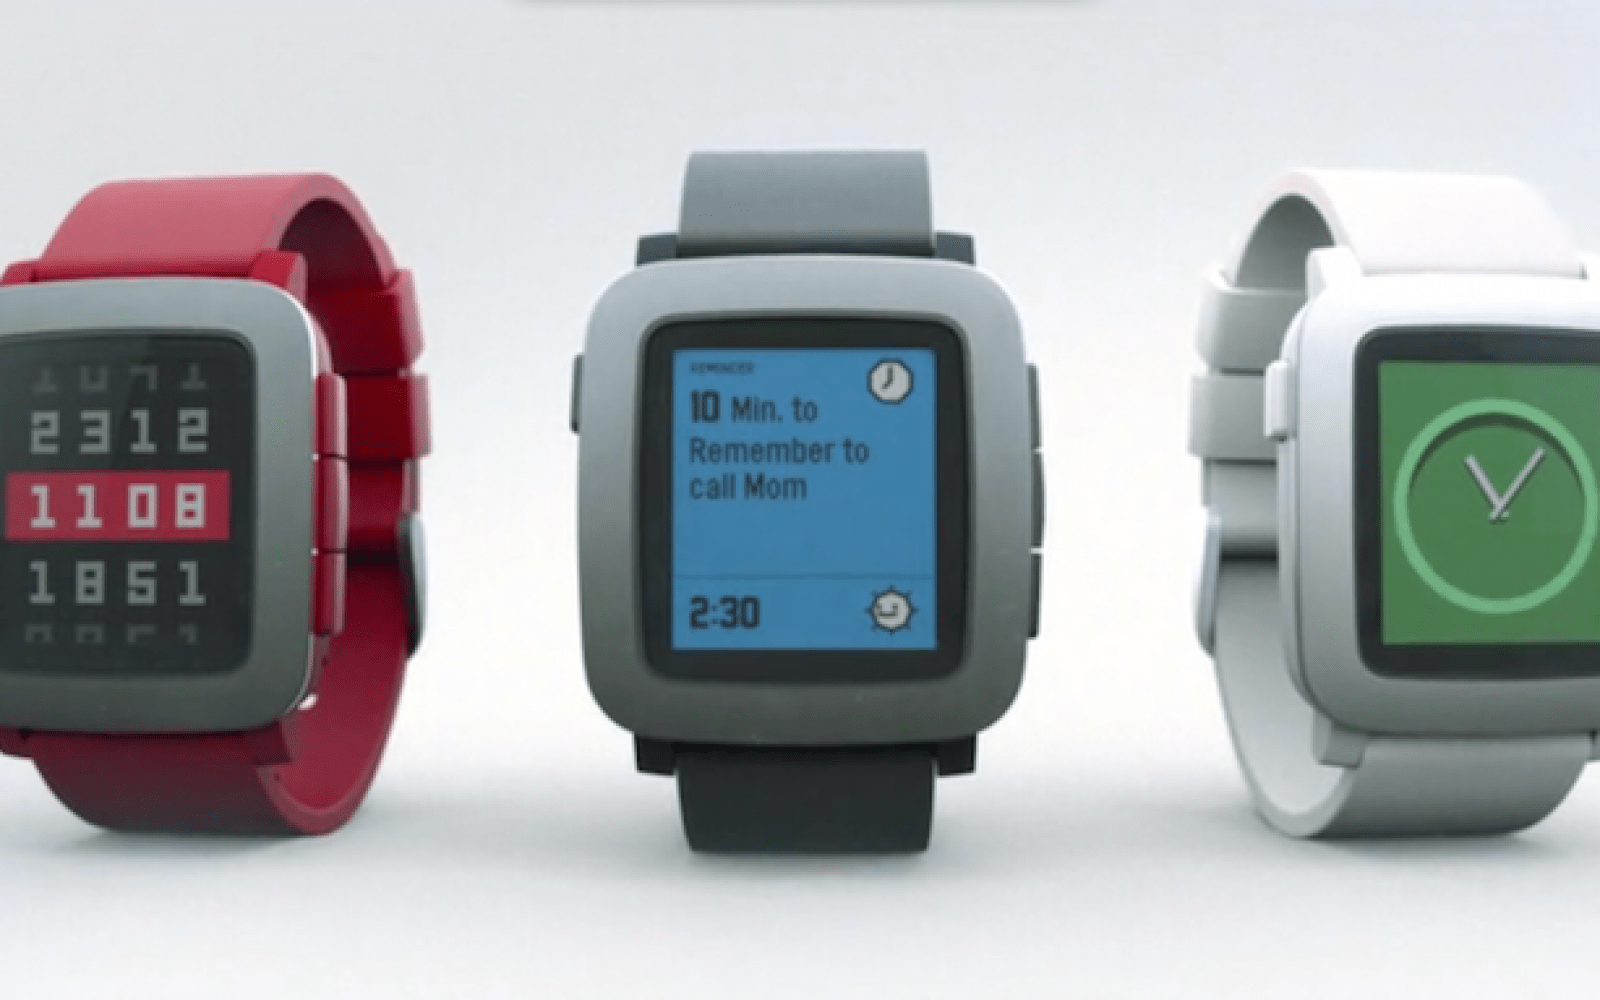 Apple cites Pebble support in isolated app rejection, developer says